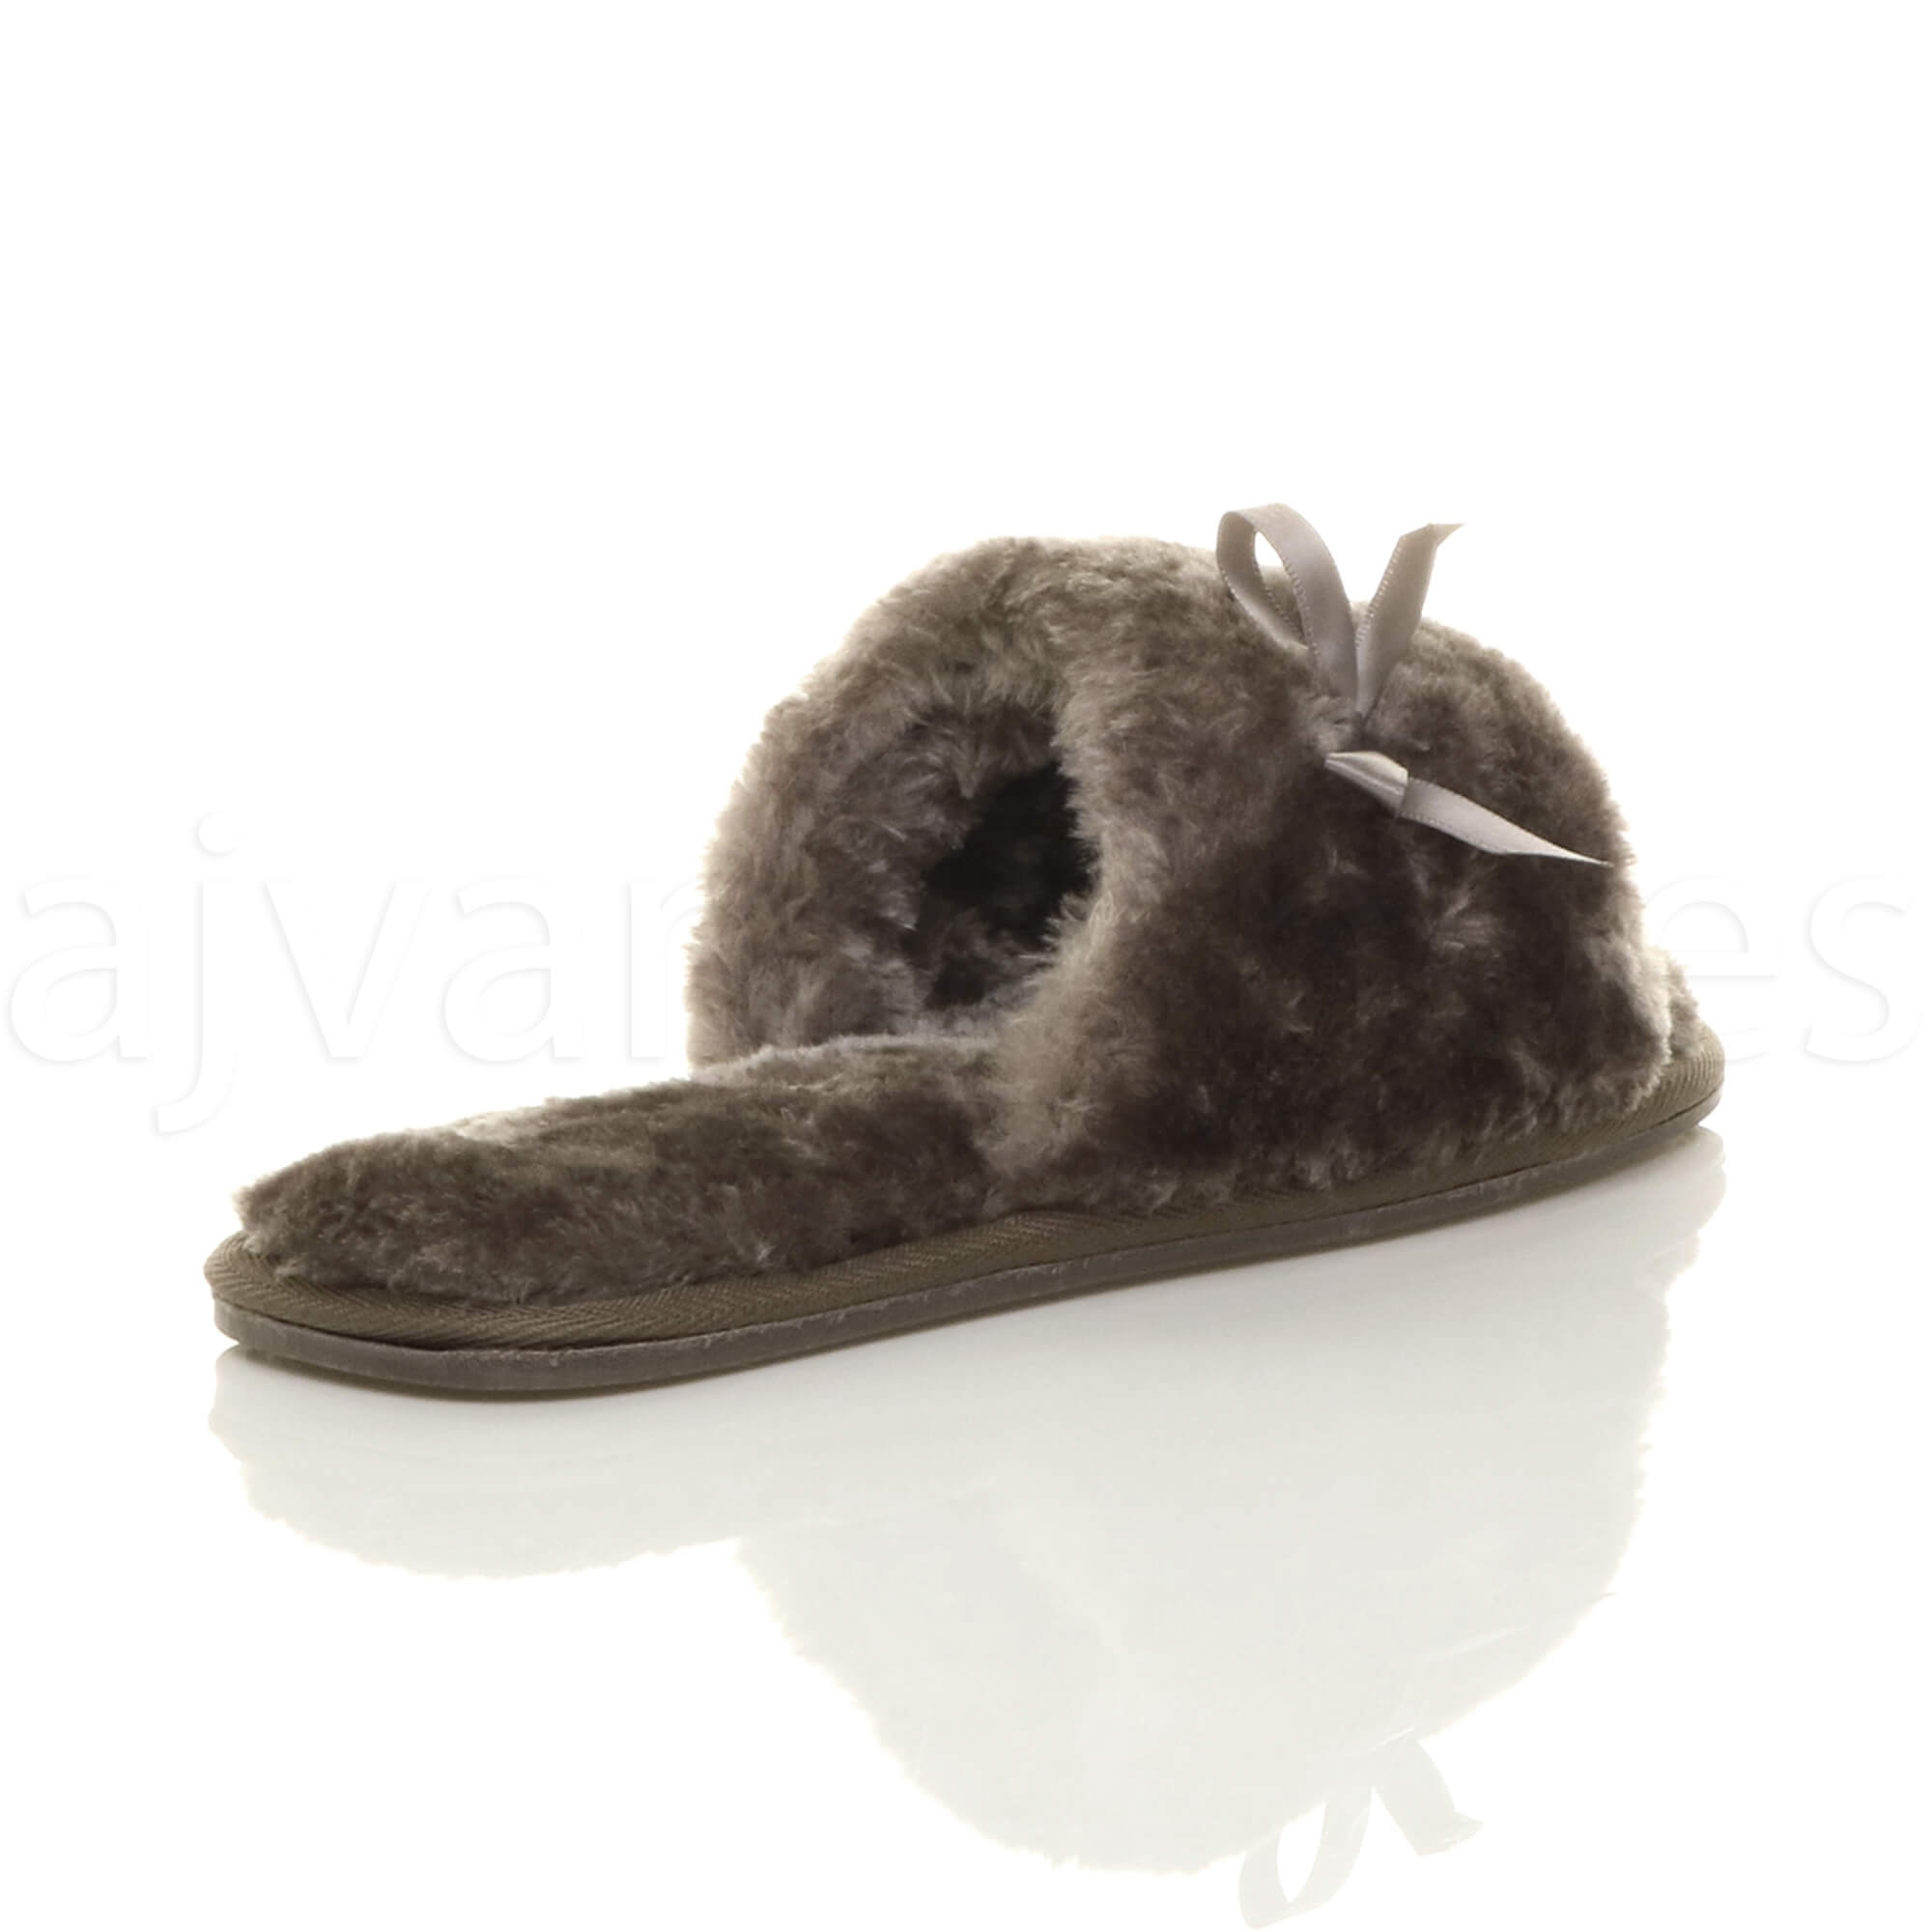 WOMENS-LADIES-FLAT-PEEP-TOE-BOW-LUXURY-COSY-FUR-LINED-SLIP-ON-SLIPPERS-SIZE thumbnail 37